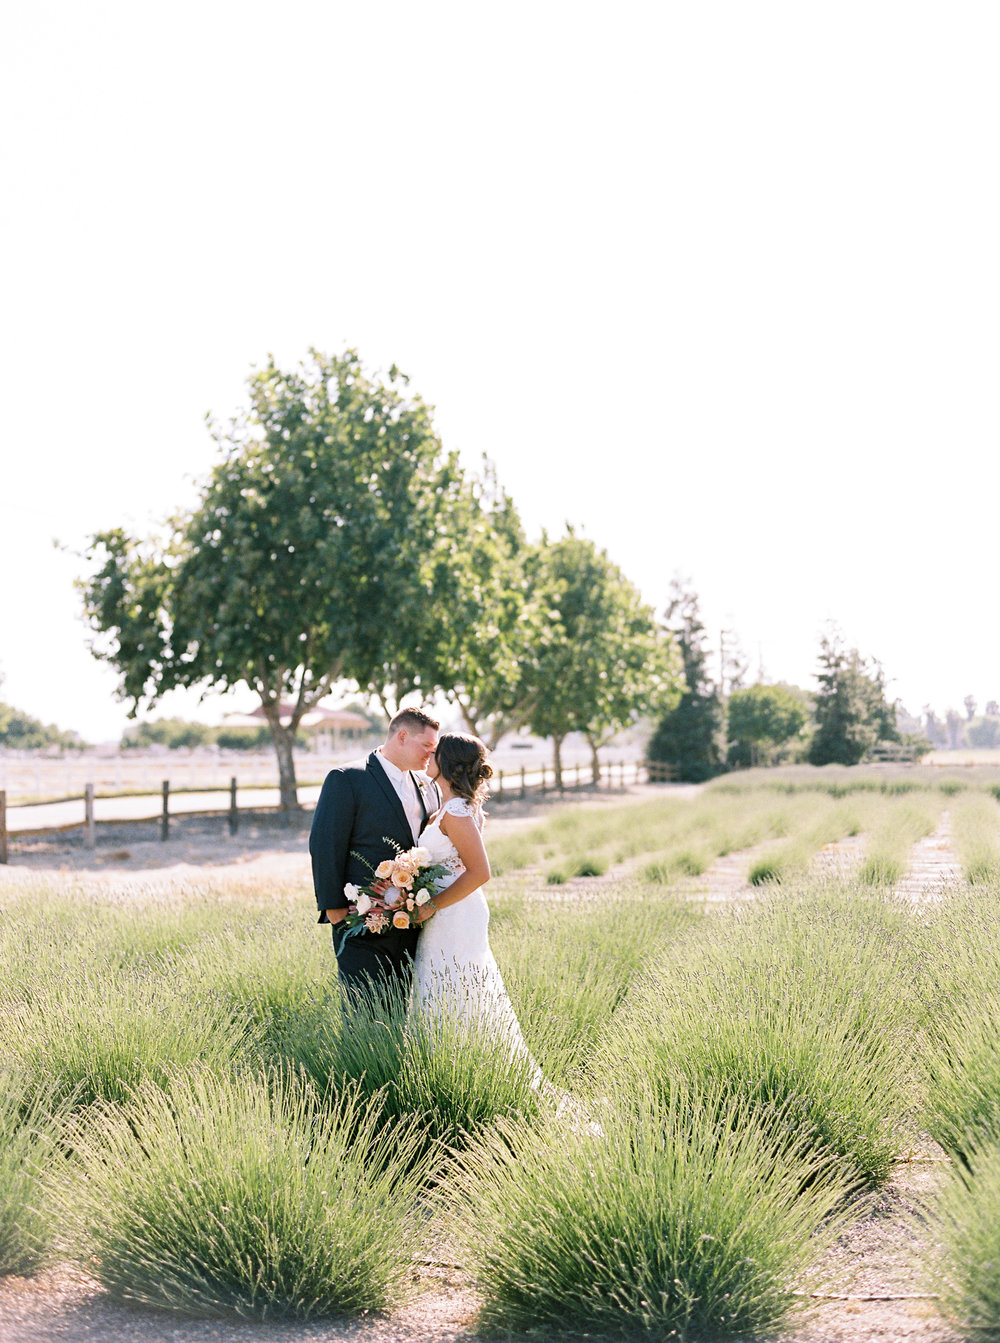 pageo-lavender-farm-wedding-turlock-california-1-16.jpg